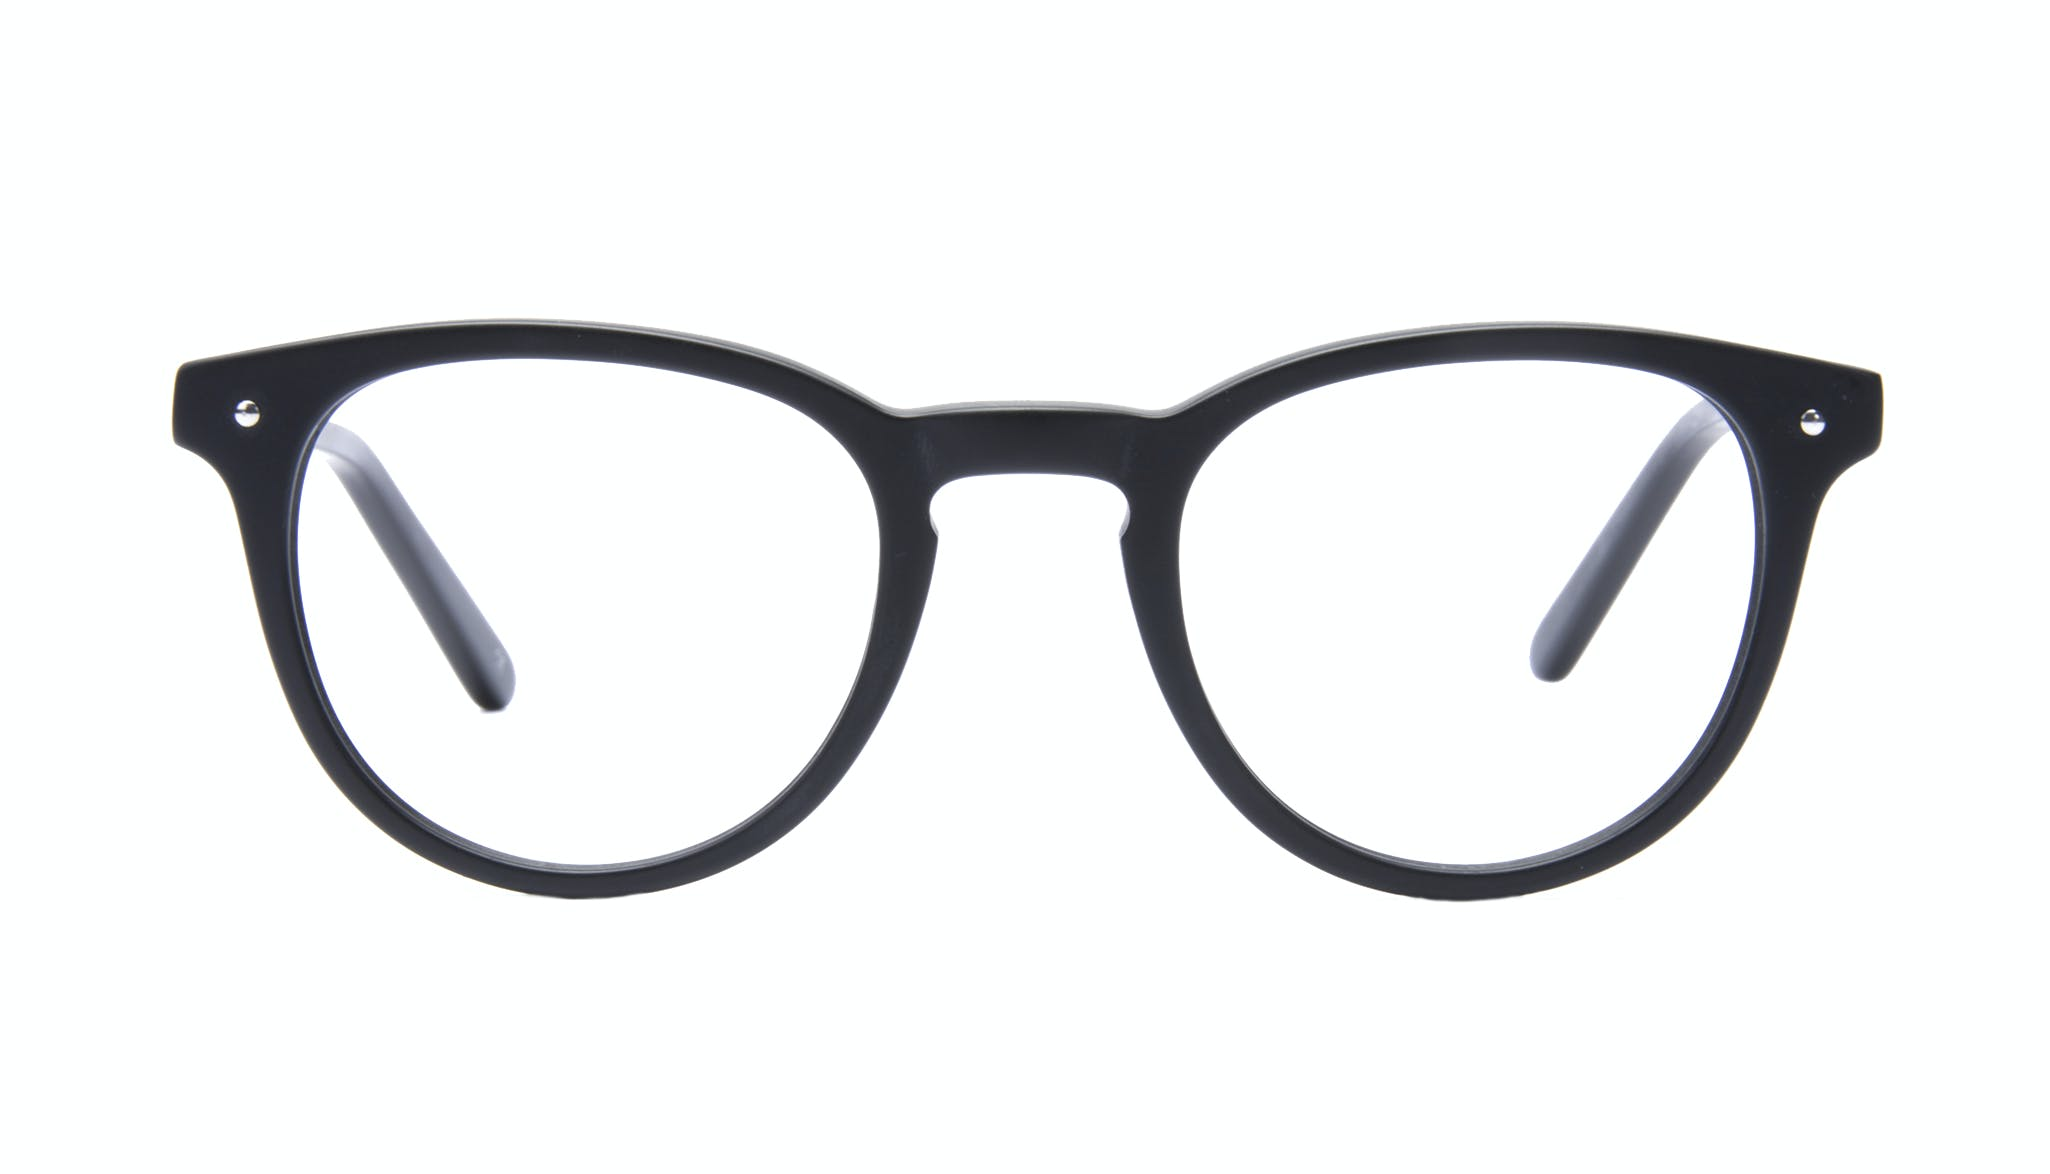 Affordable Fashion Glasses Round Eyeglasses Men Cult Matte Black Front